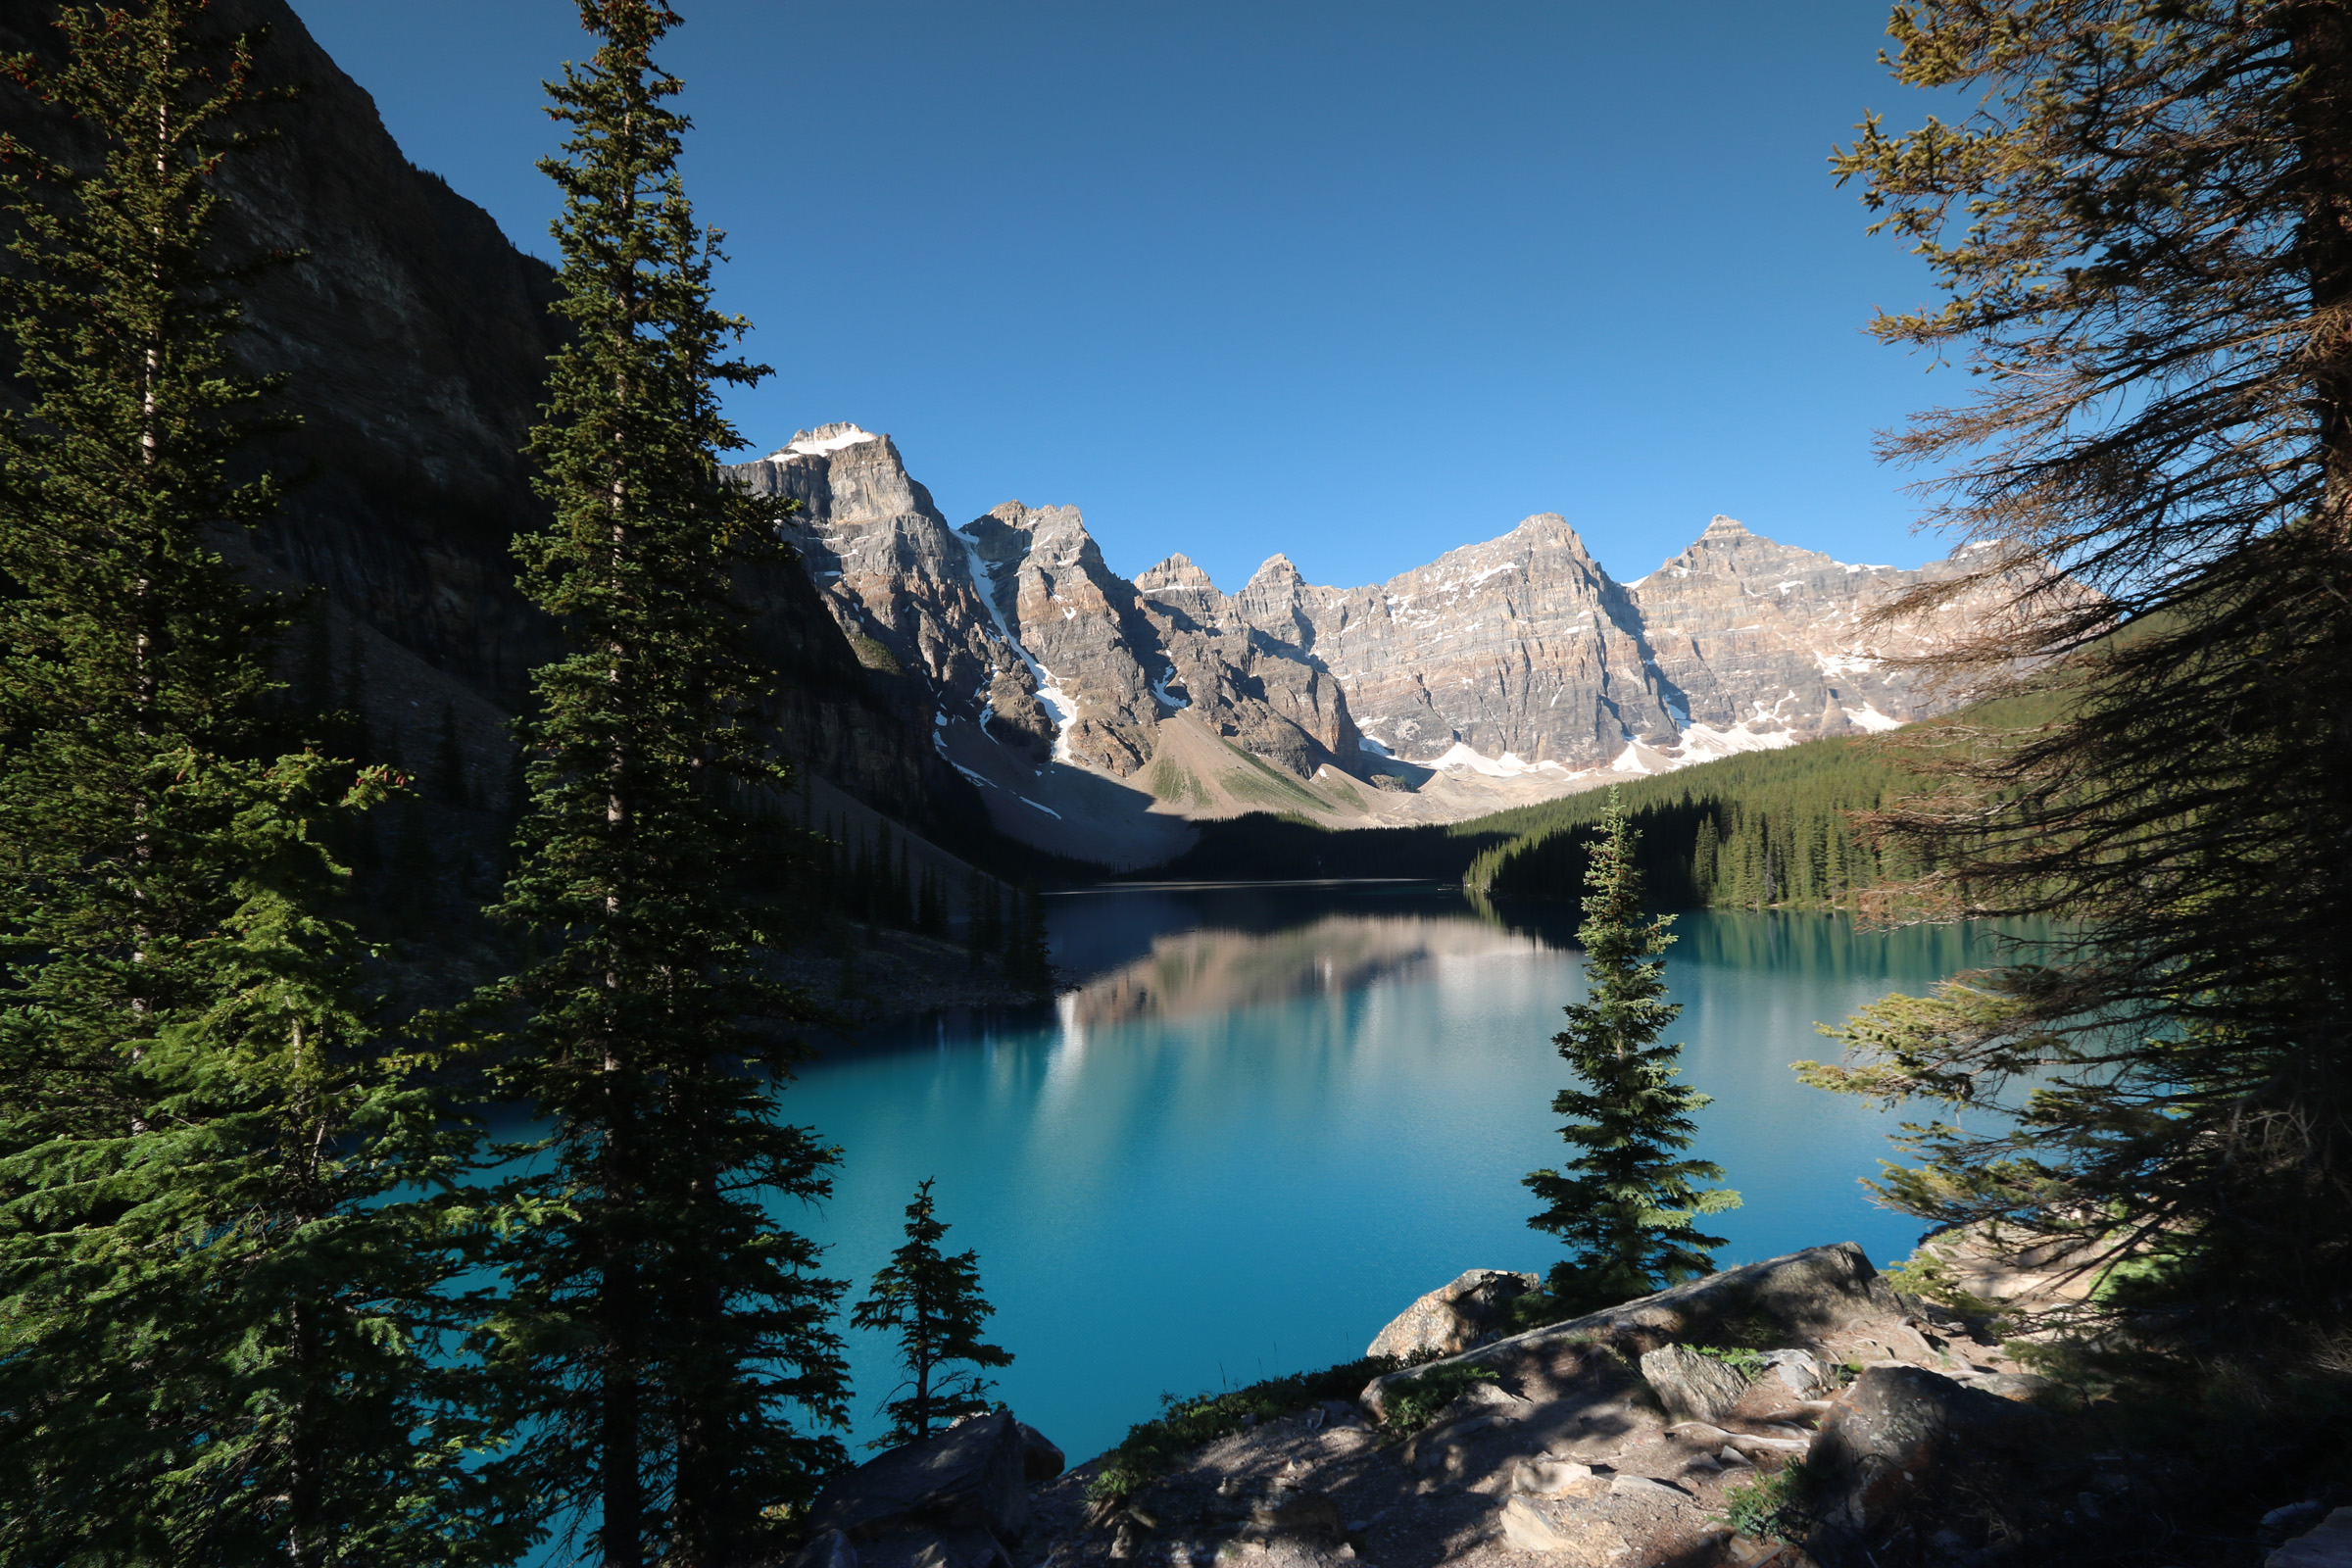 Moraine Lake, Canada - by davebloggs007